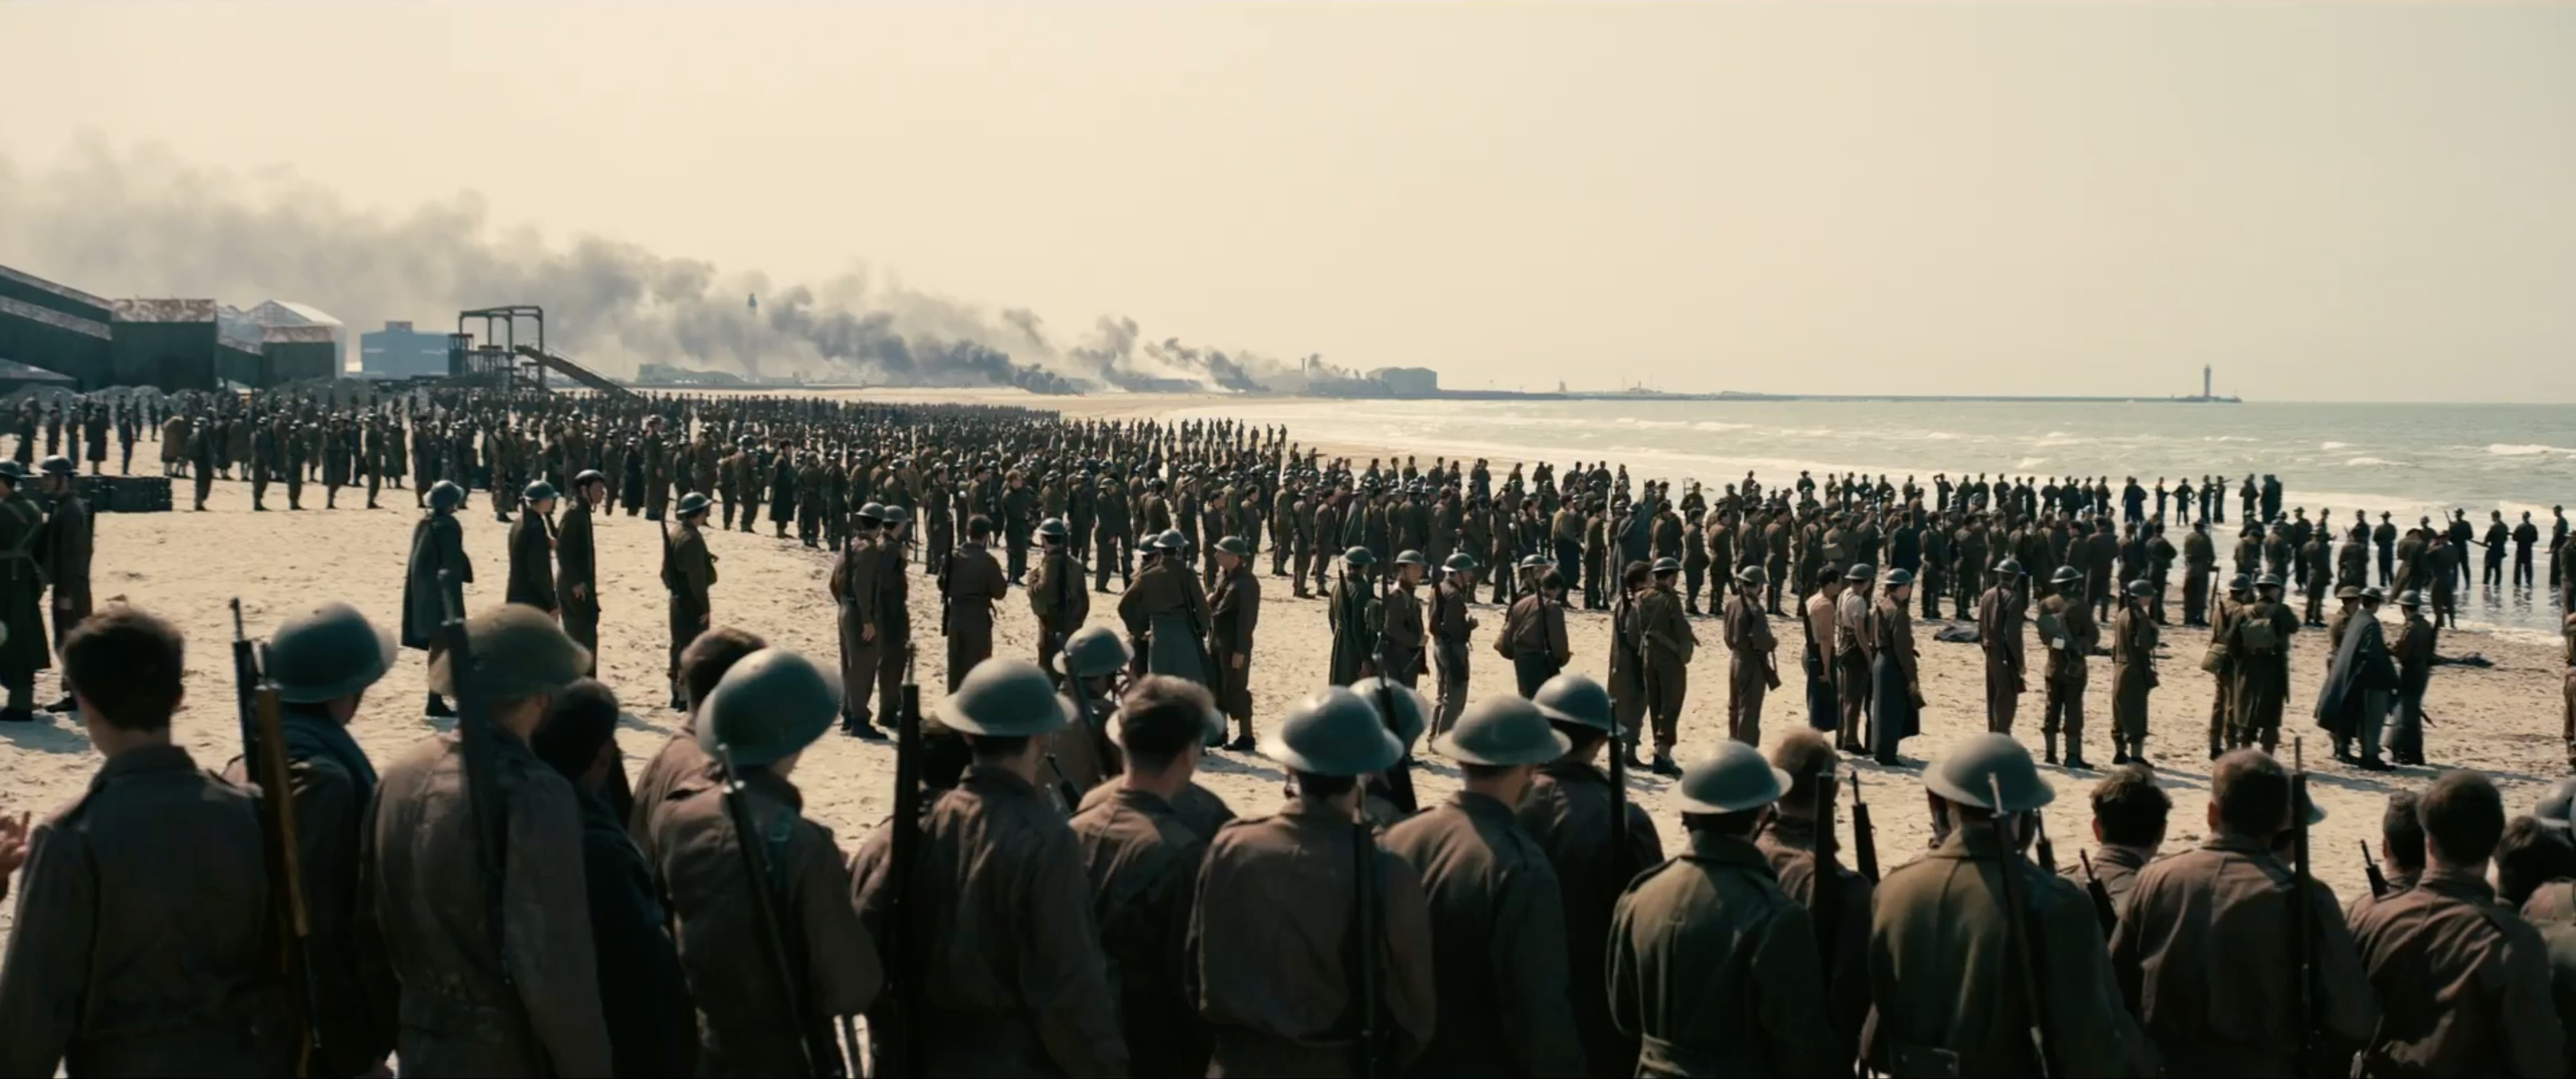 Wallpaper Dunkirk, army, Tom Hardy, Cillian Murphy, best